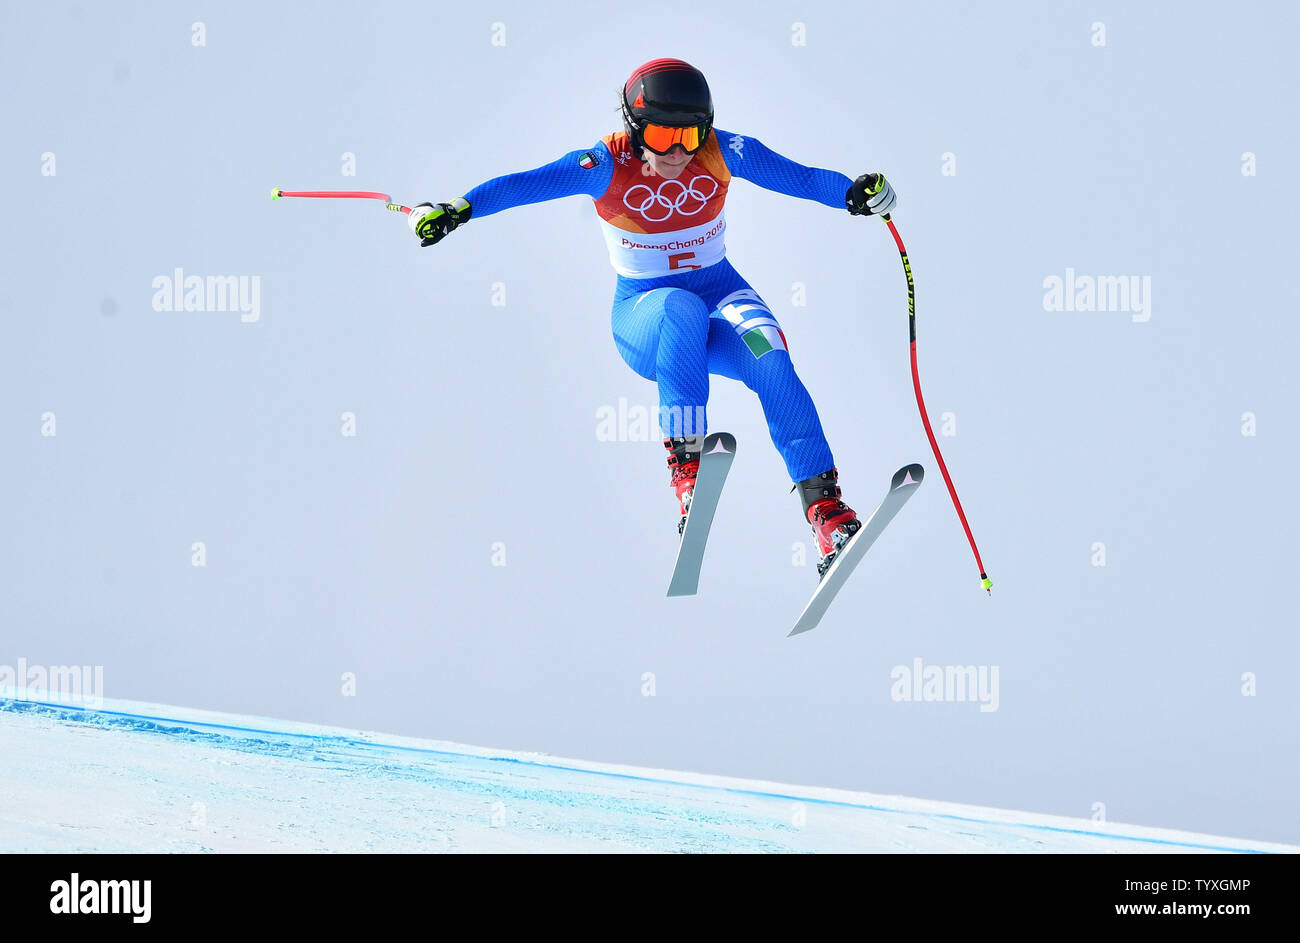 39 22 Stock Photos & 39 22 Stock Images - Page 2 - Alamy